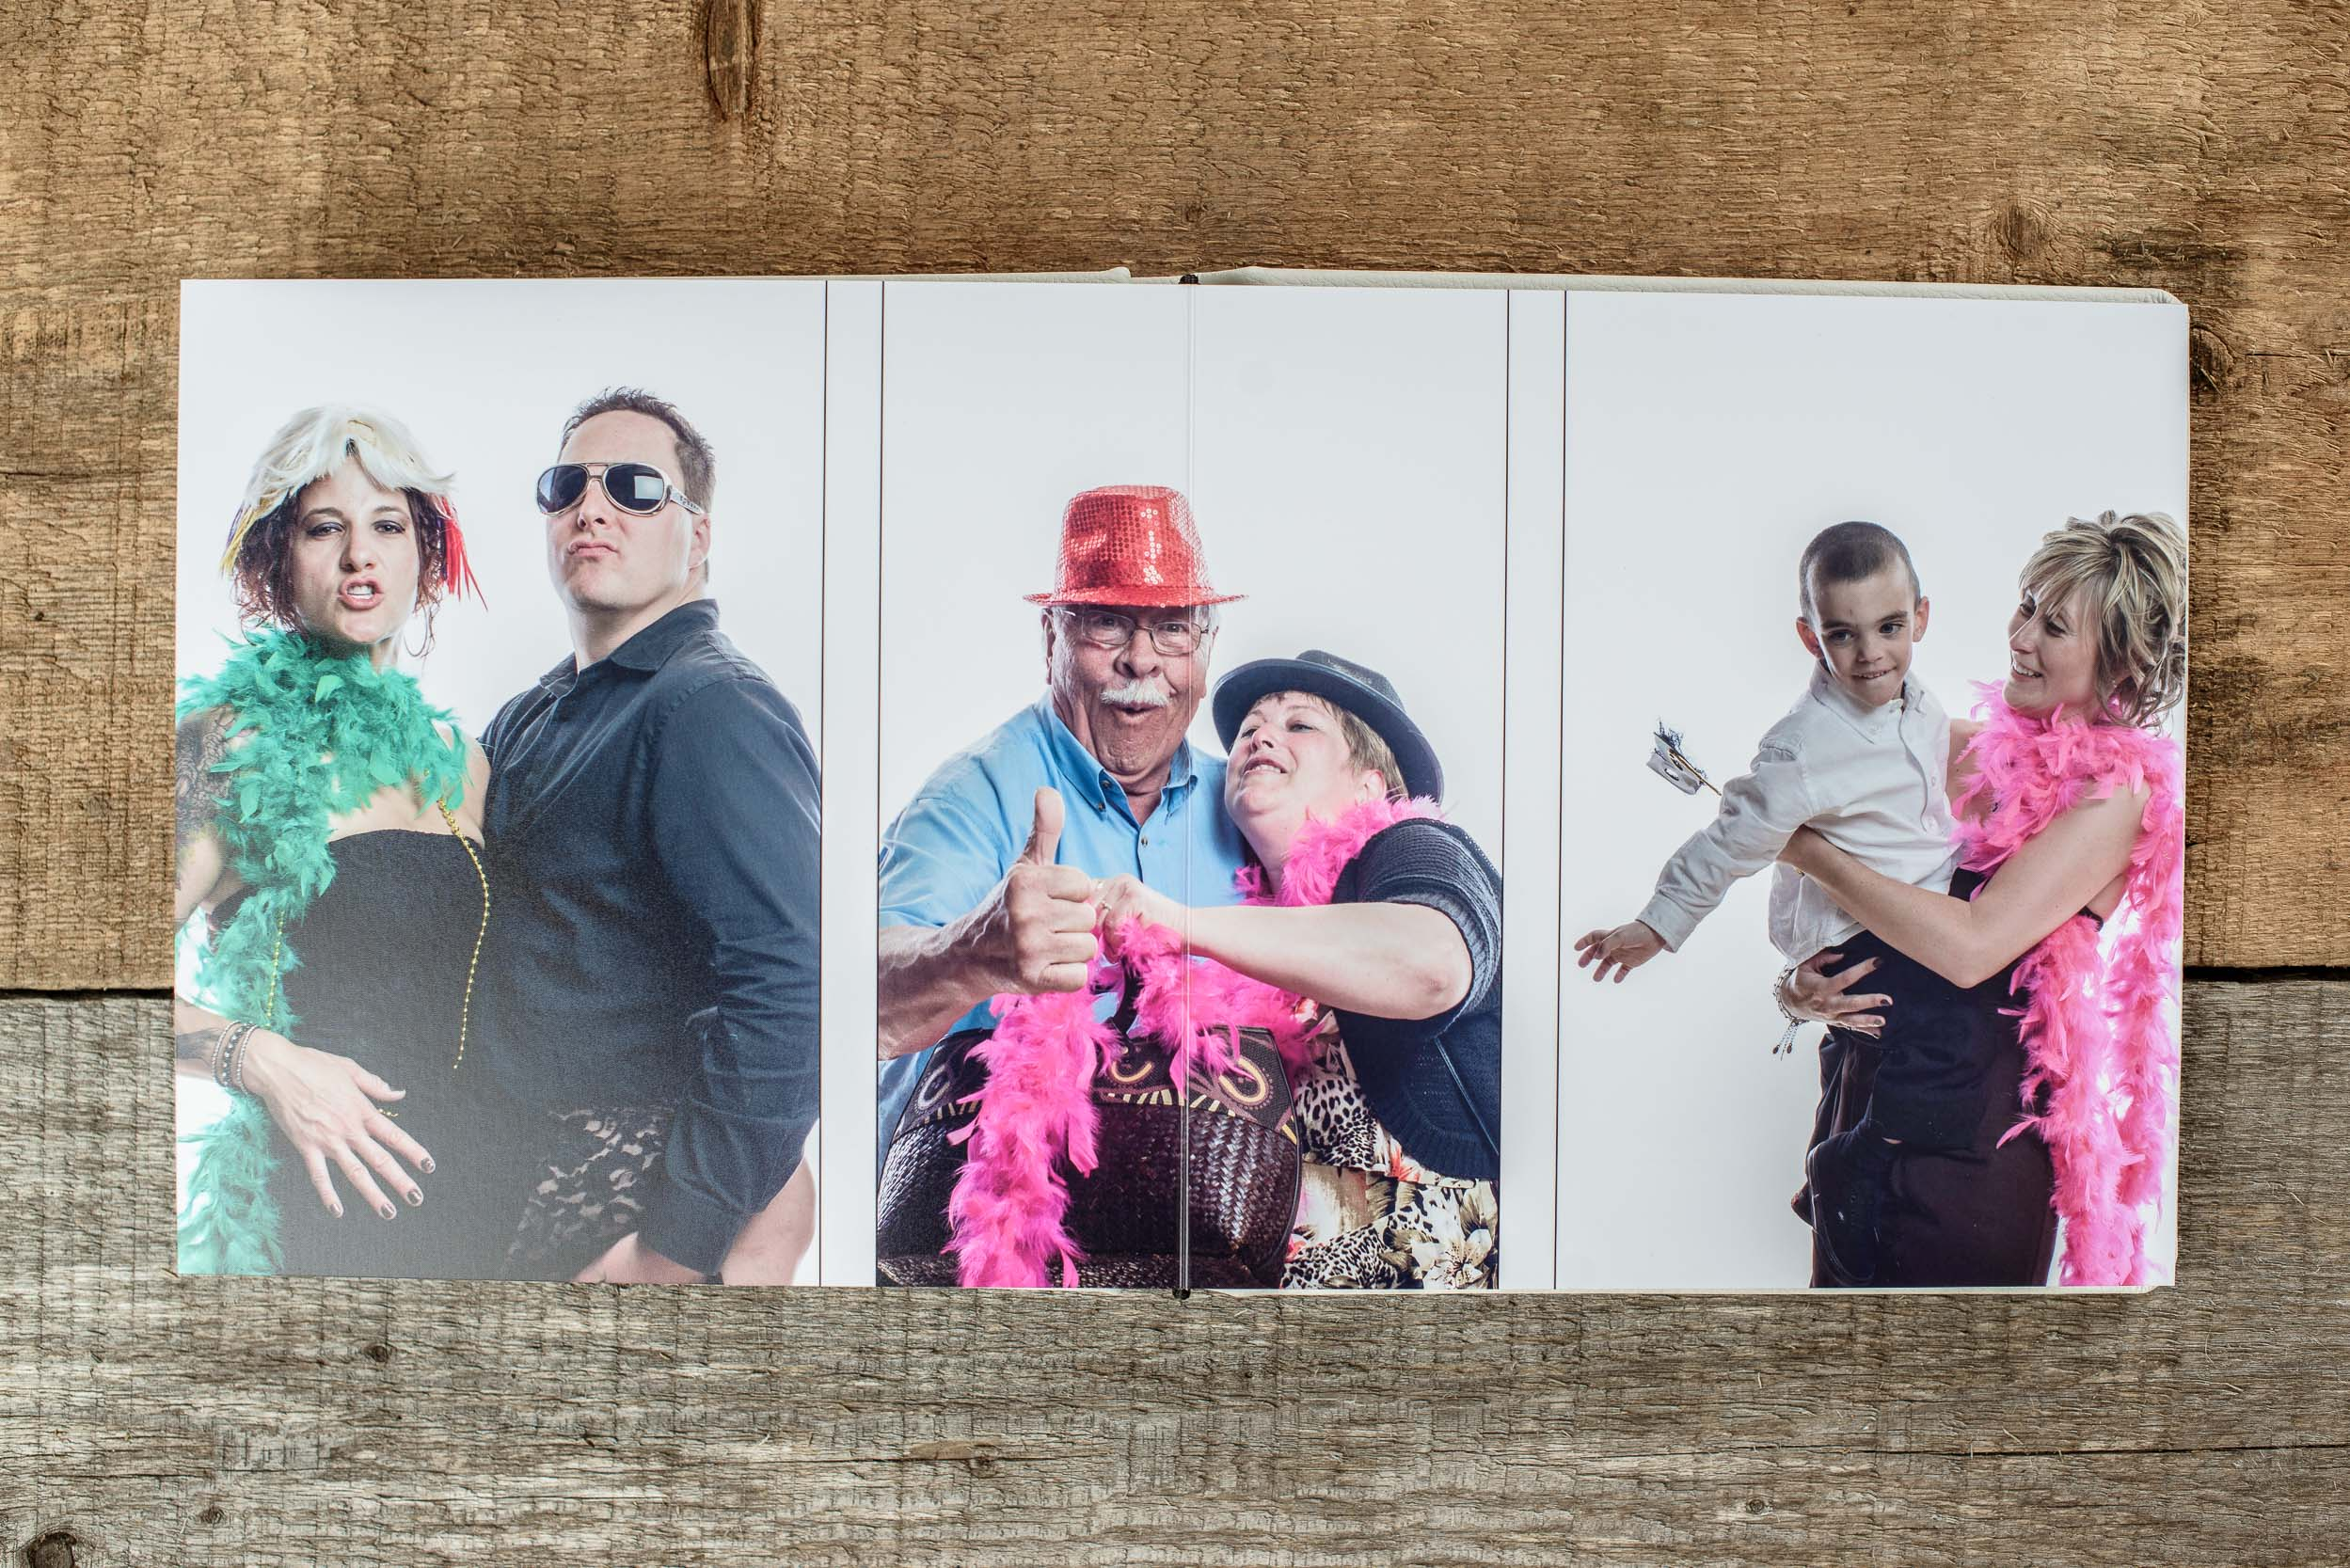 Nigel Fearon Photography | Photo Booth Album-5.jpg